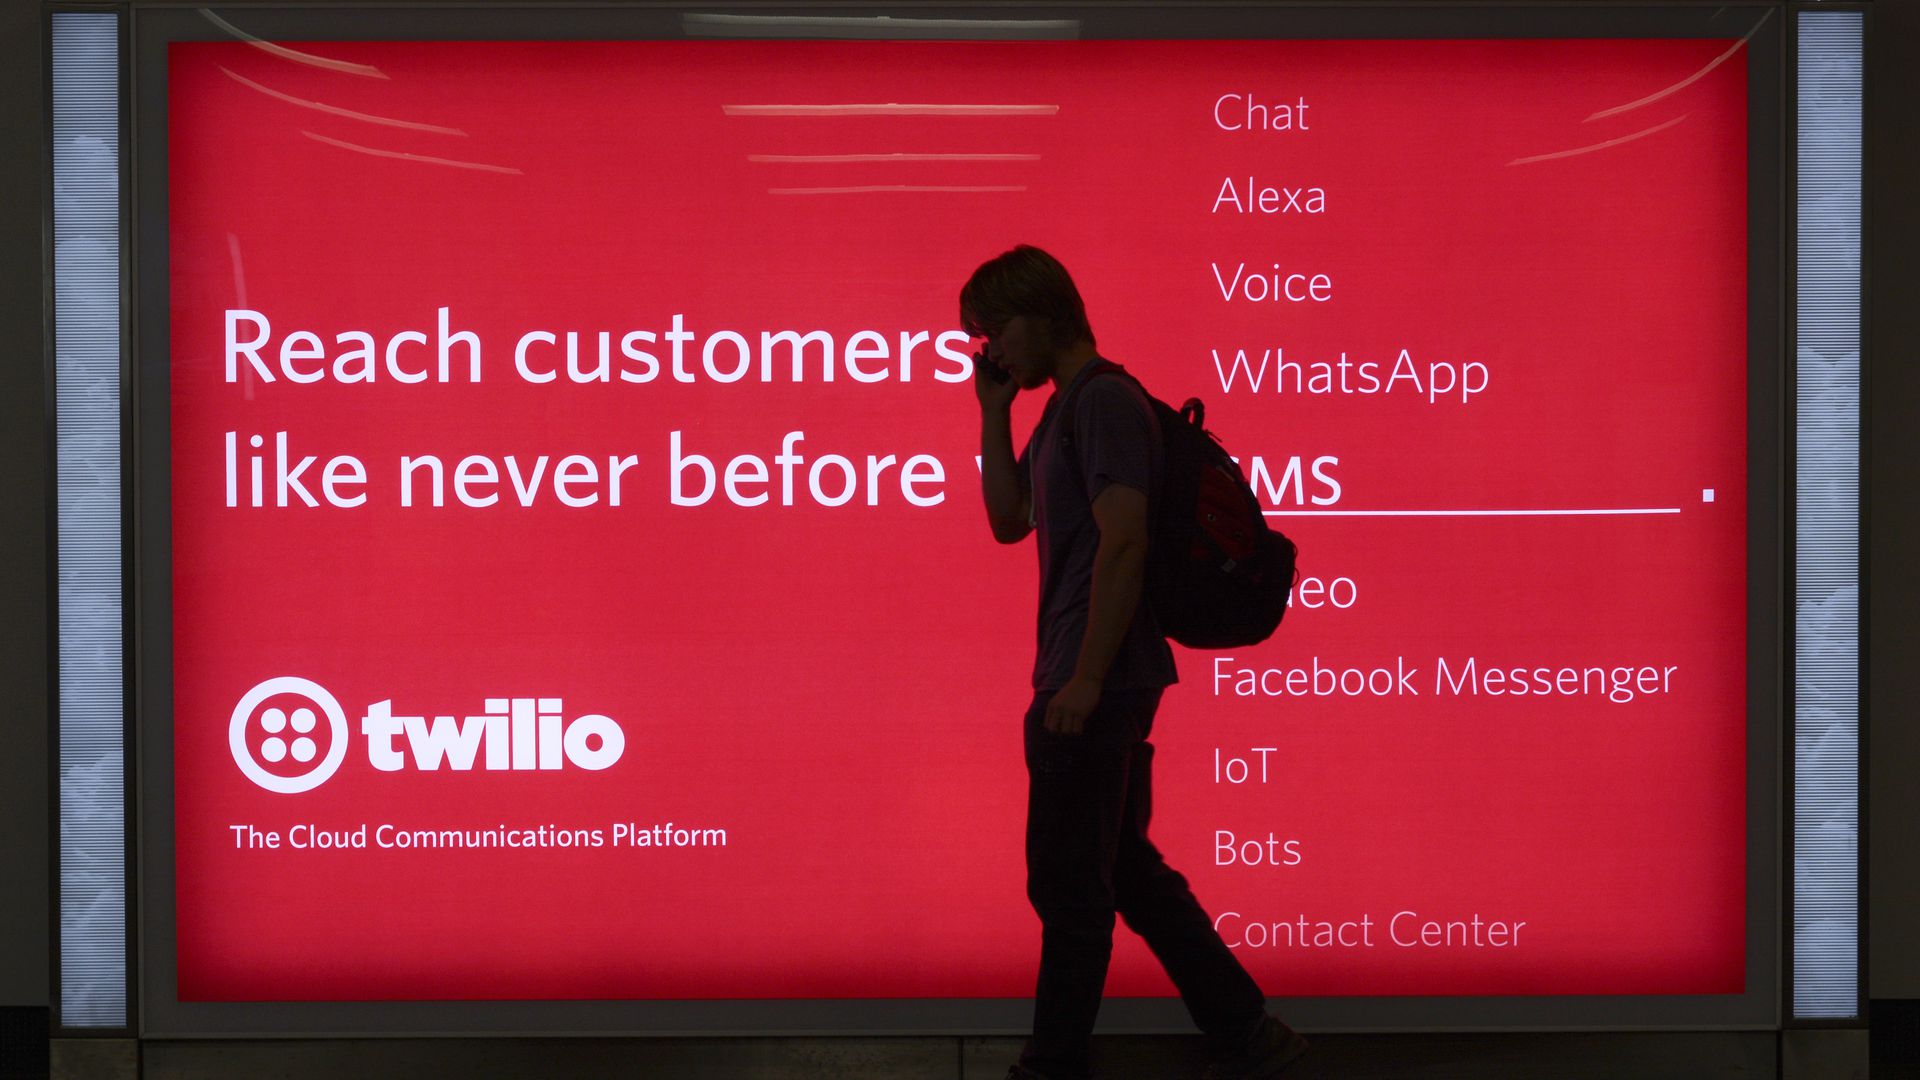 An advertisement at the San Fran airport of Twilio